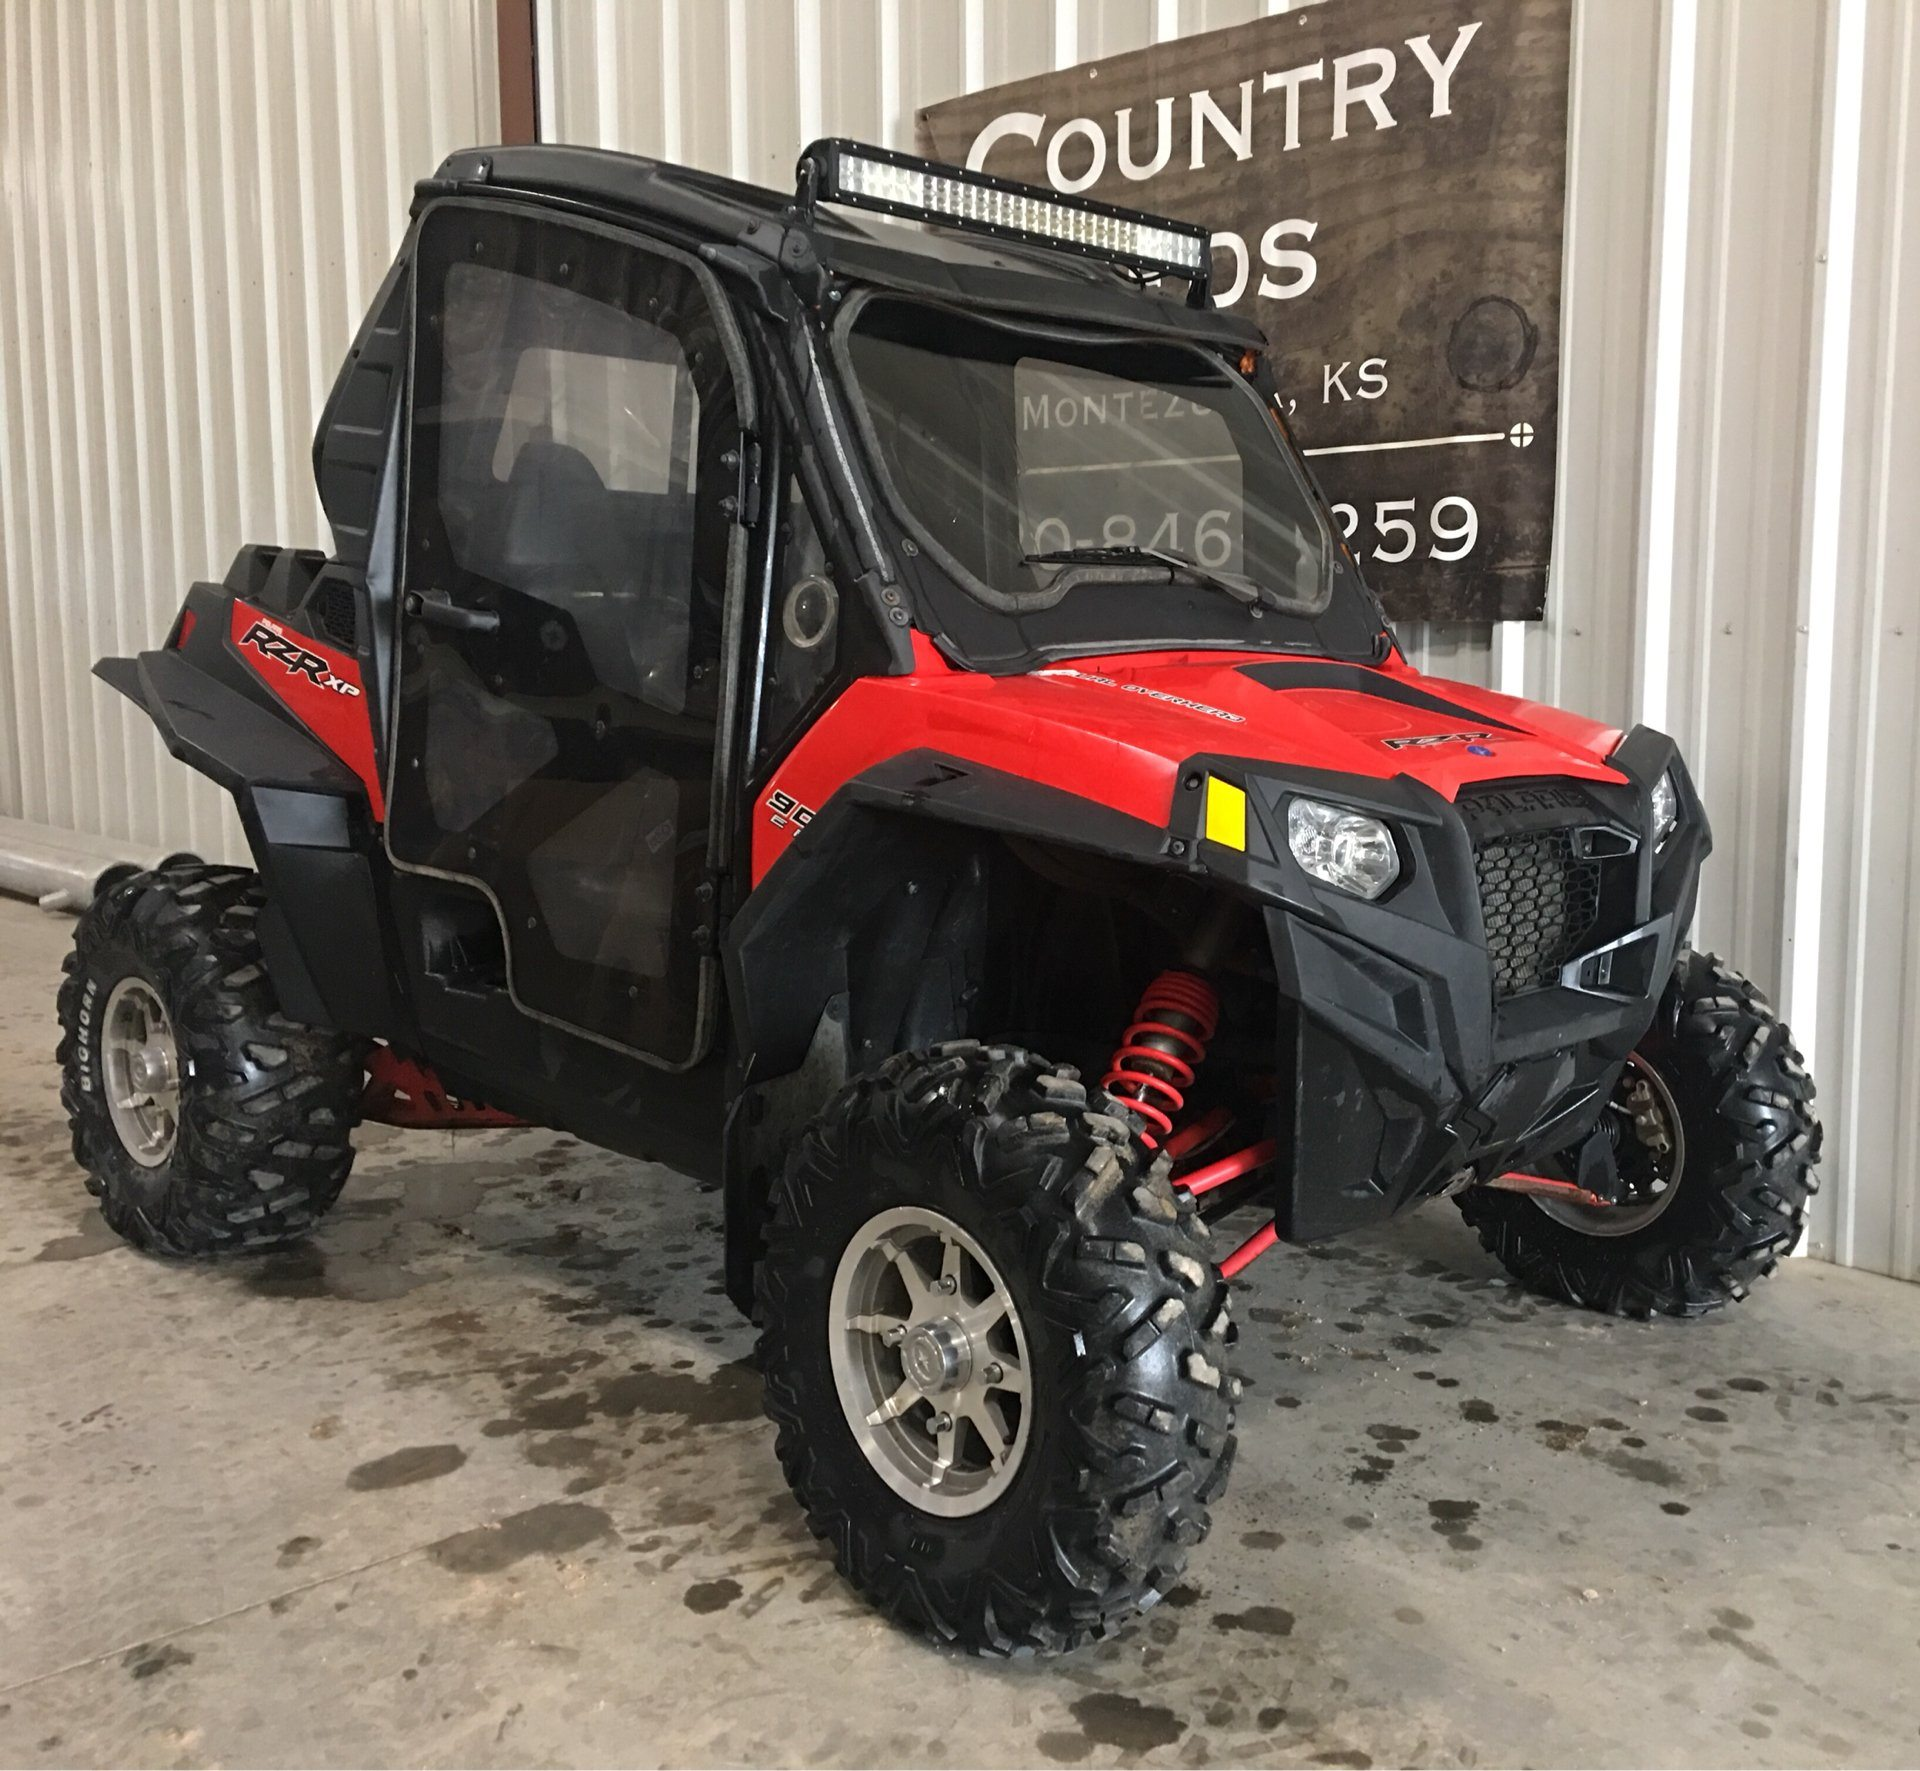 2013 Polaris RZR® XP 900 EFI in Montezuma, Kansas - Photo 17